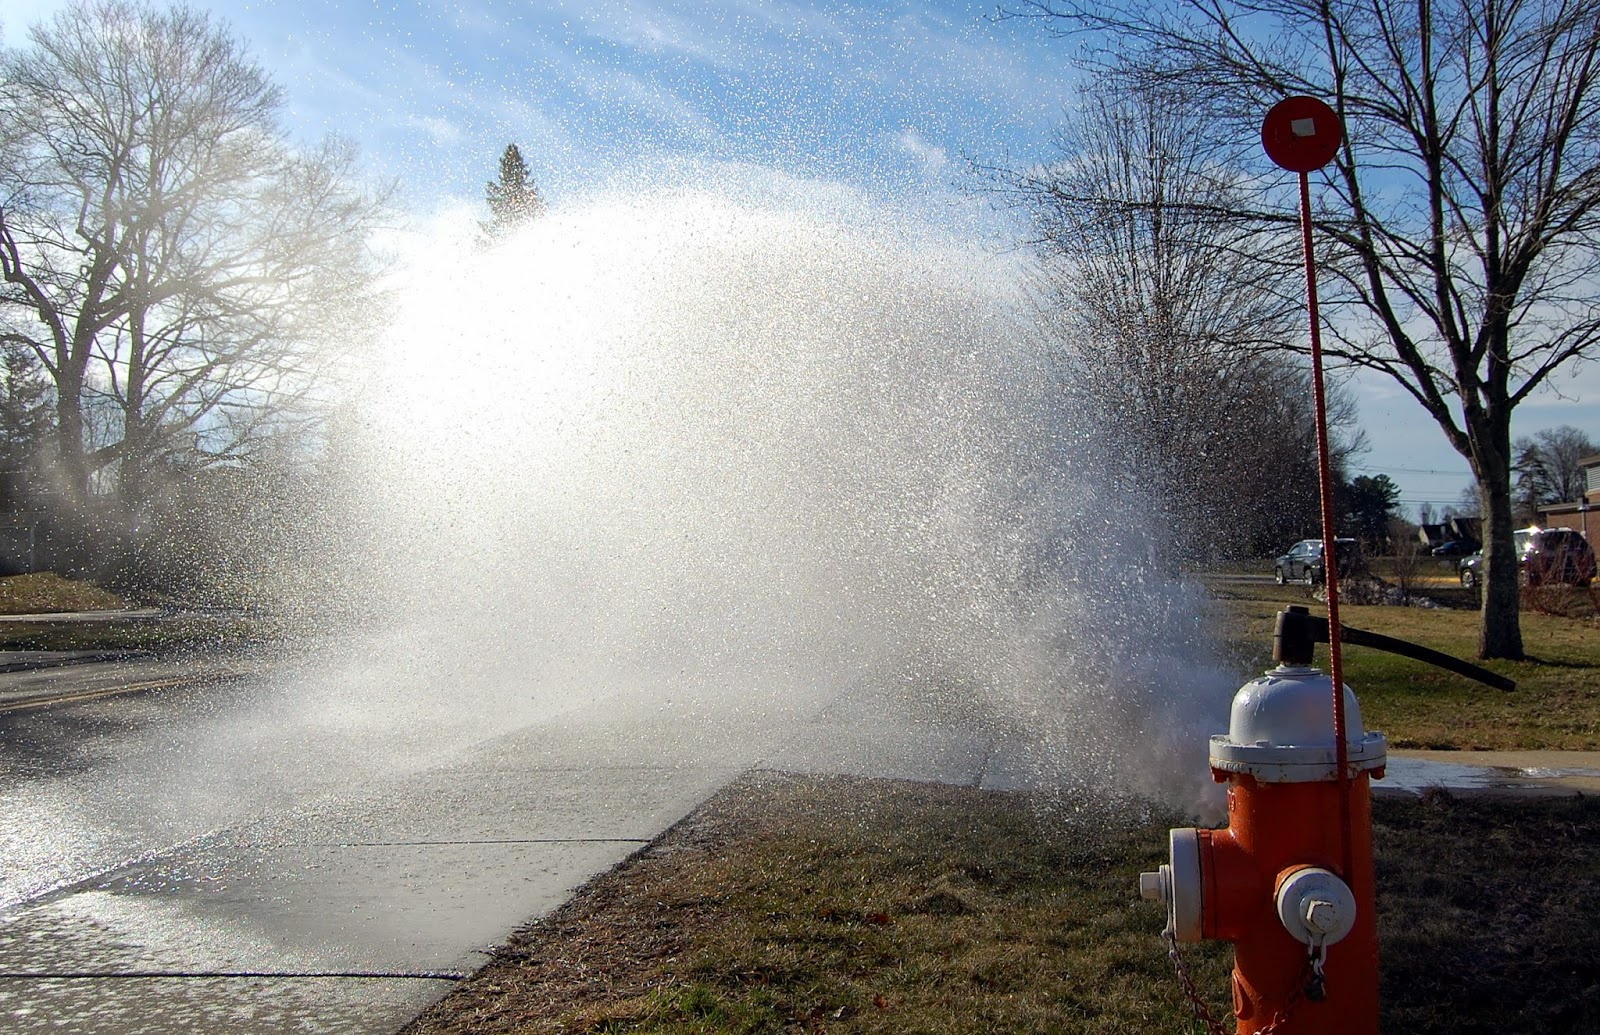 hydrant flushing at Parmenter School